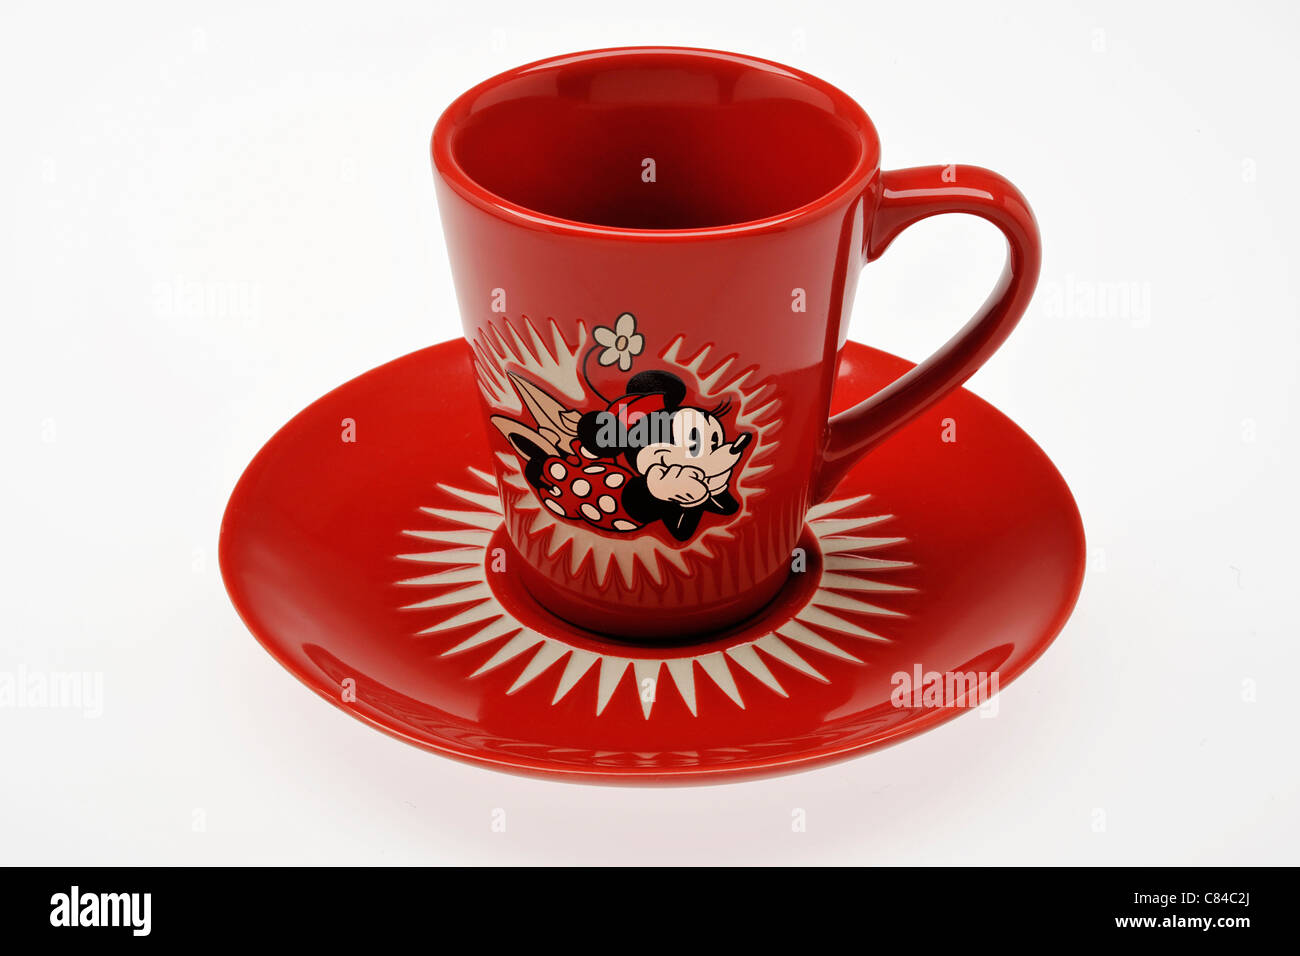 Minnie Mouse Cup & Saucer - Stock Image